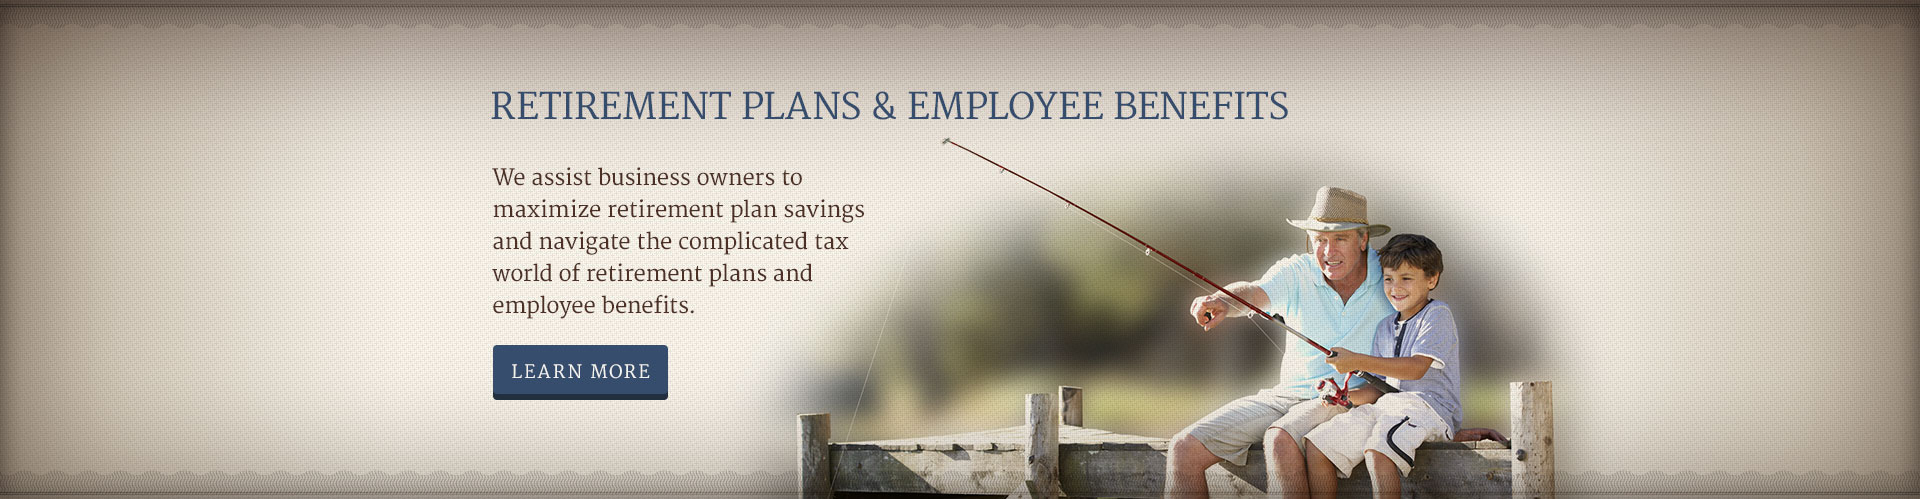 banner-retirement-plans-and-employee-benefits